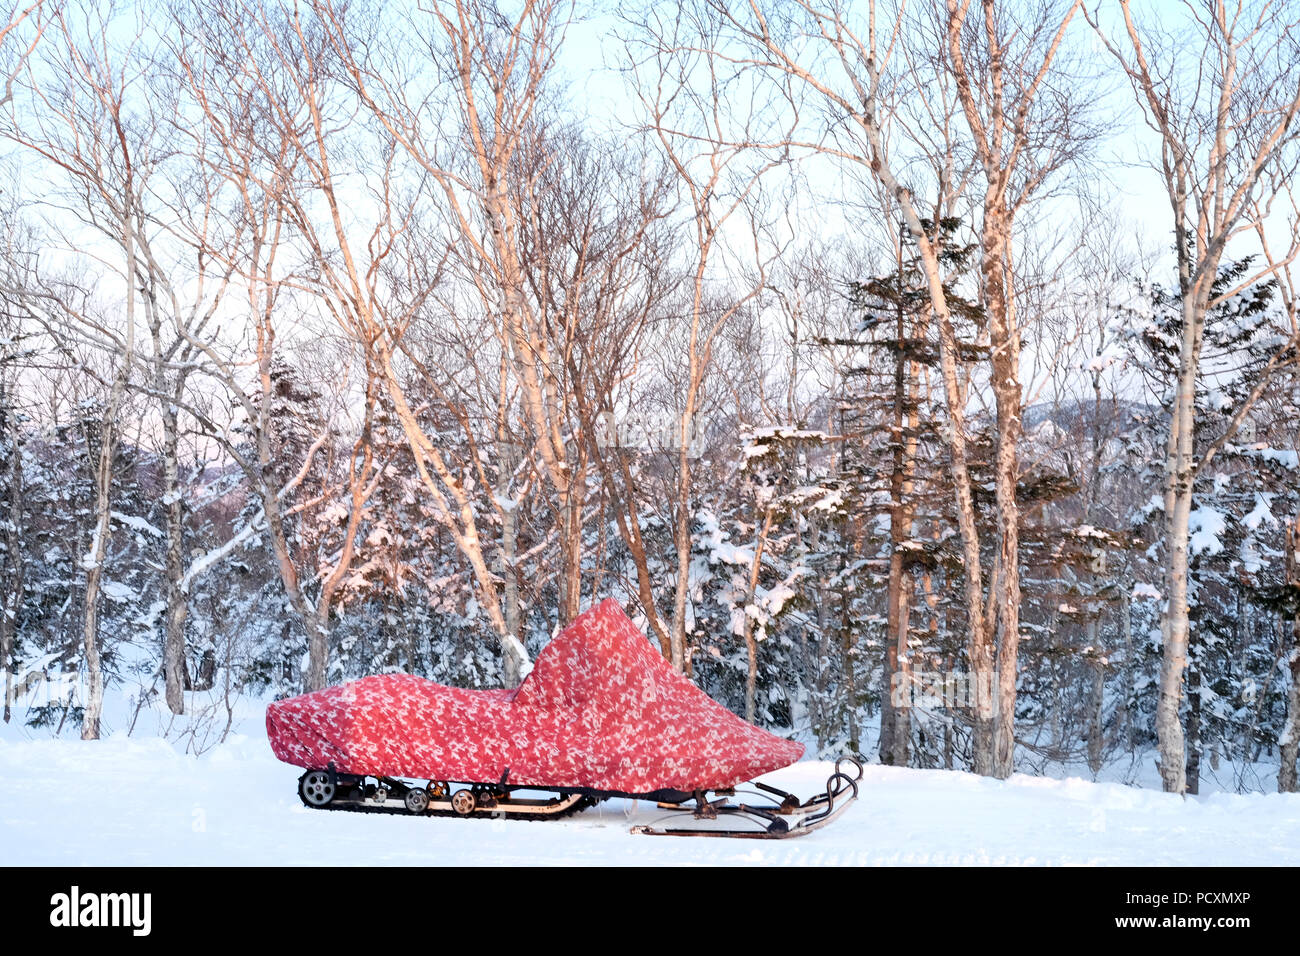 The snowmobile in the snowy forest in front of trees - Stock Image